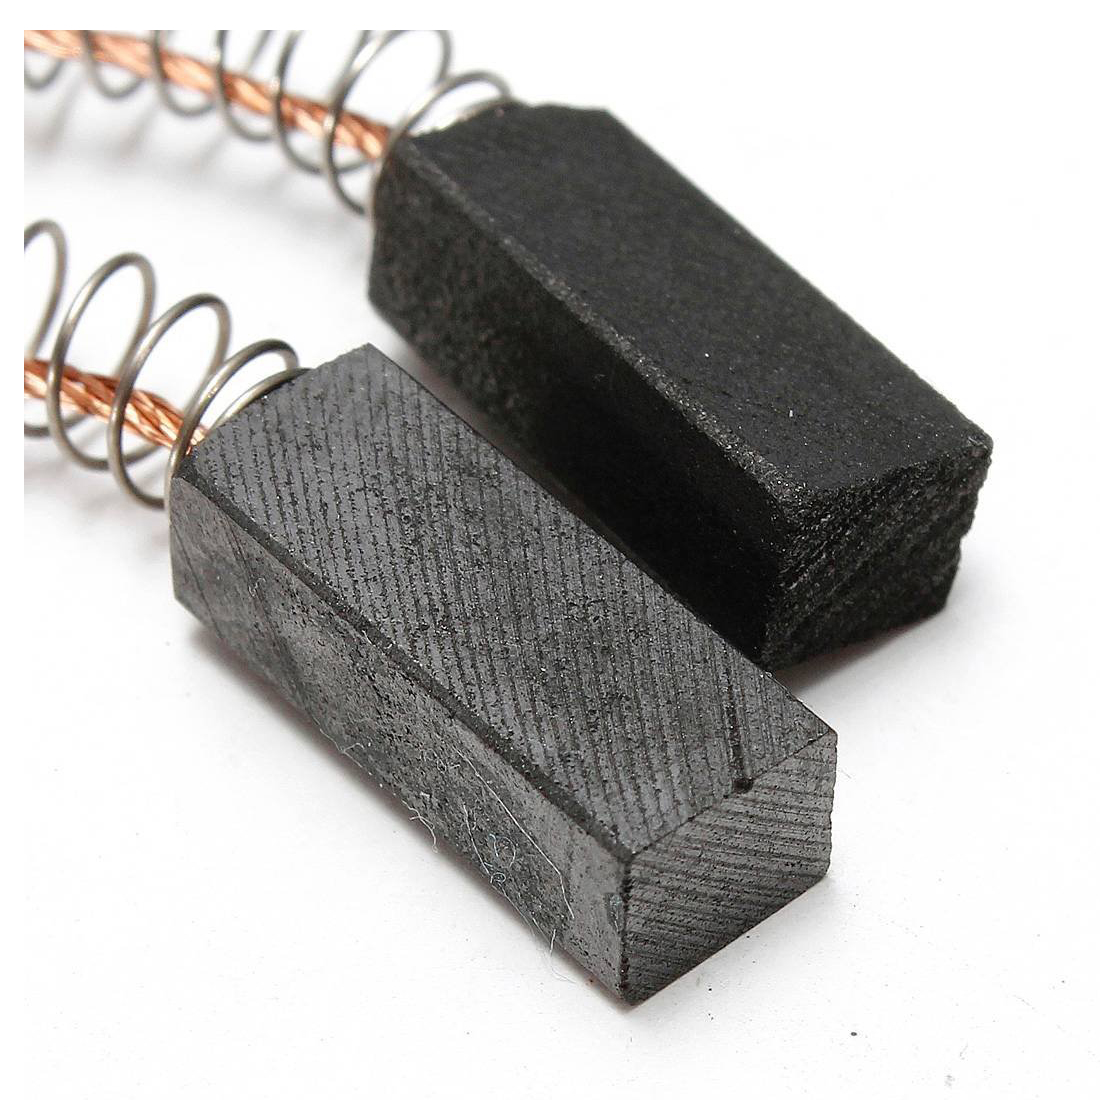 Carbon Steel Grinding Company New Zealand: 2 Pcs Angle Grinder Motor Charcoal Carbon Brushes 14x6x5mm